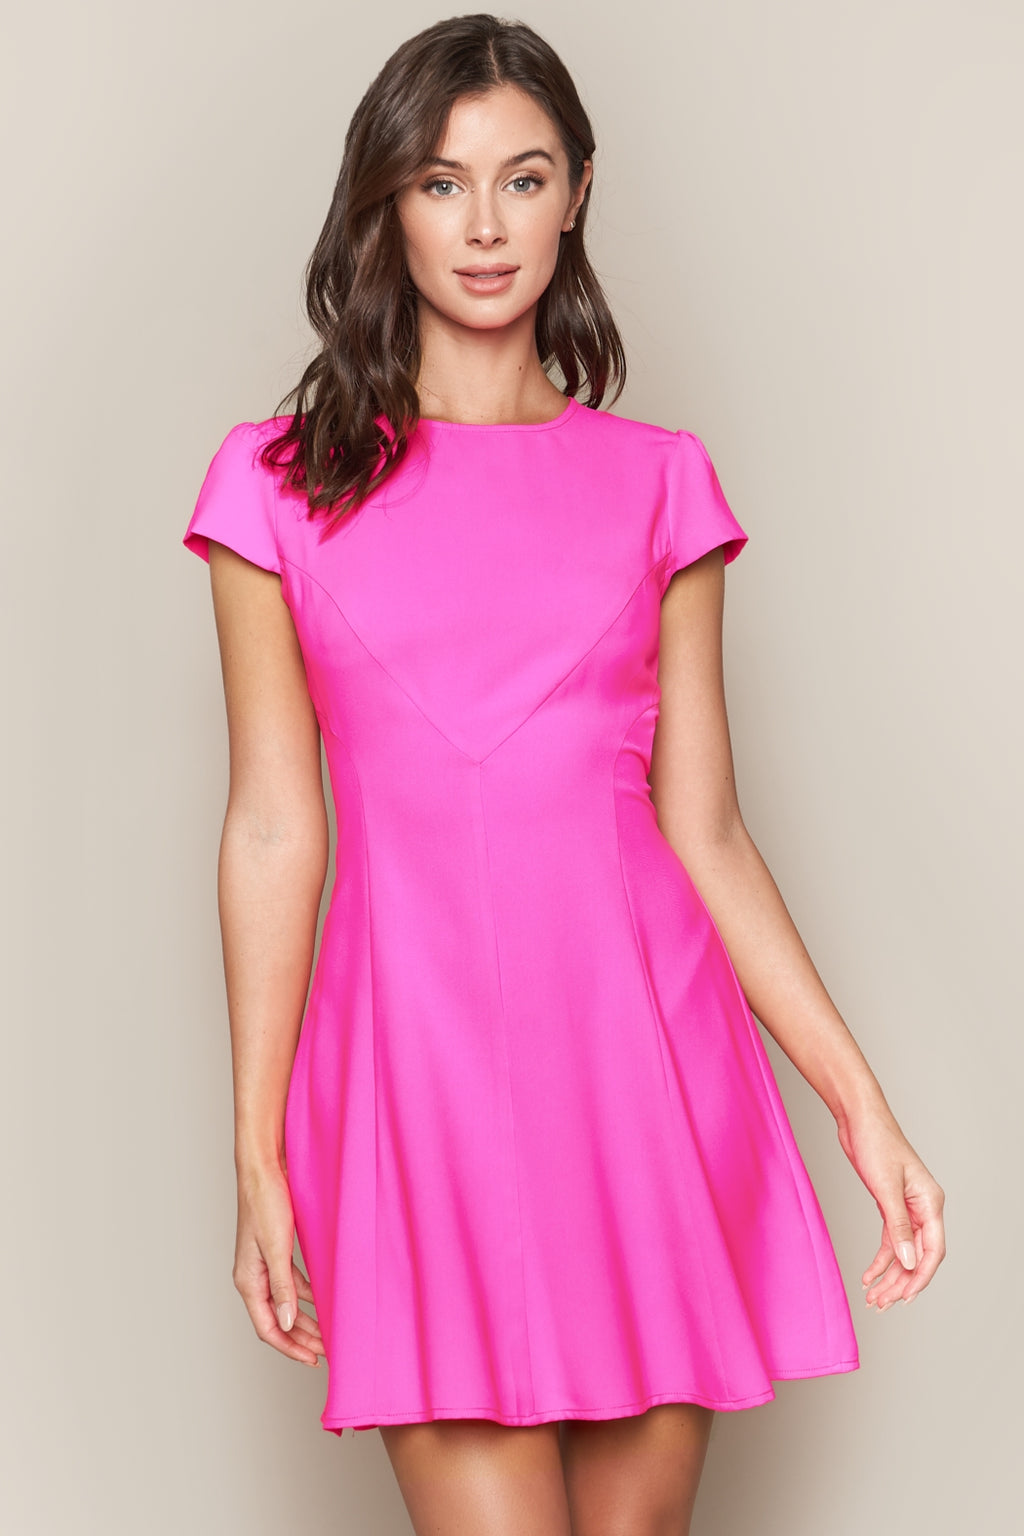 UNIKONCEPT: Lifestyle boutique; image shows a bright, hot pink a-line styled dress by sugar lips. The Bueno hot pink a-line dress features a short sleeve and tight bodice with asymmetrical stitching throughout. The dress is loose from the waistline to the bottom to showcase the a-line style.